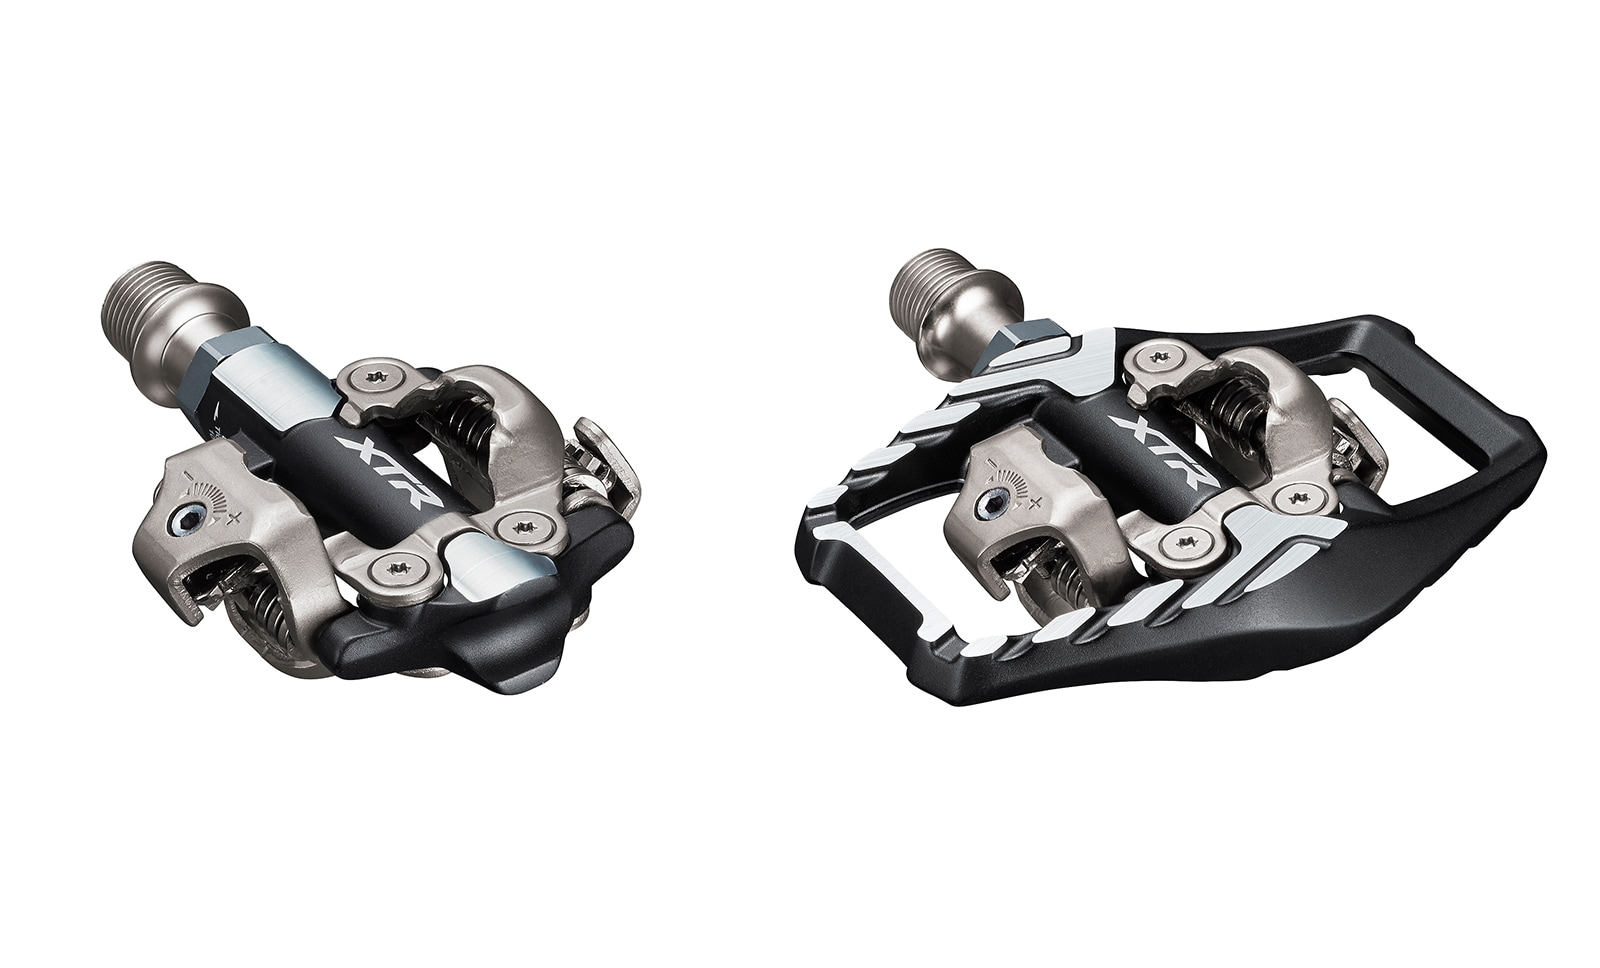 XTR M9100 and M9120 pedals